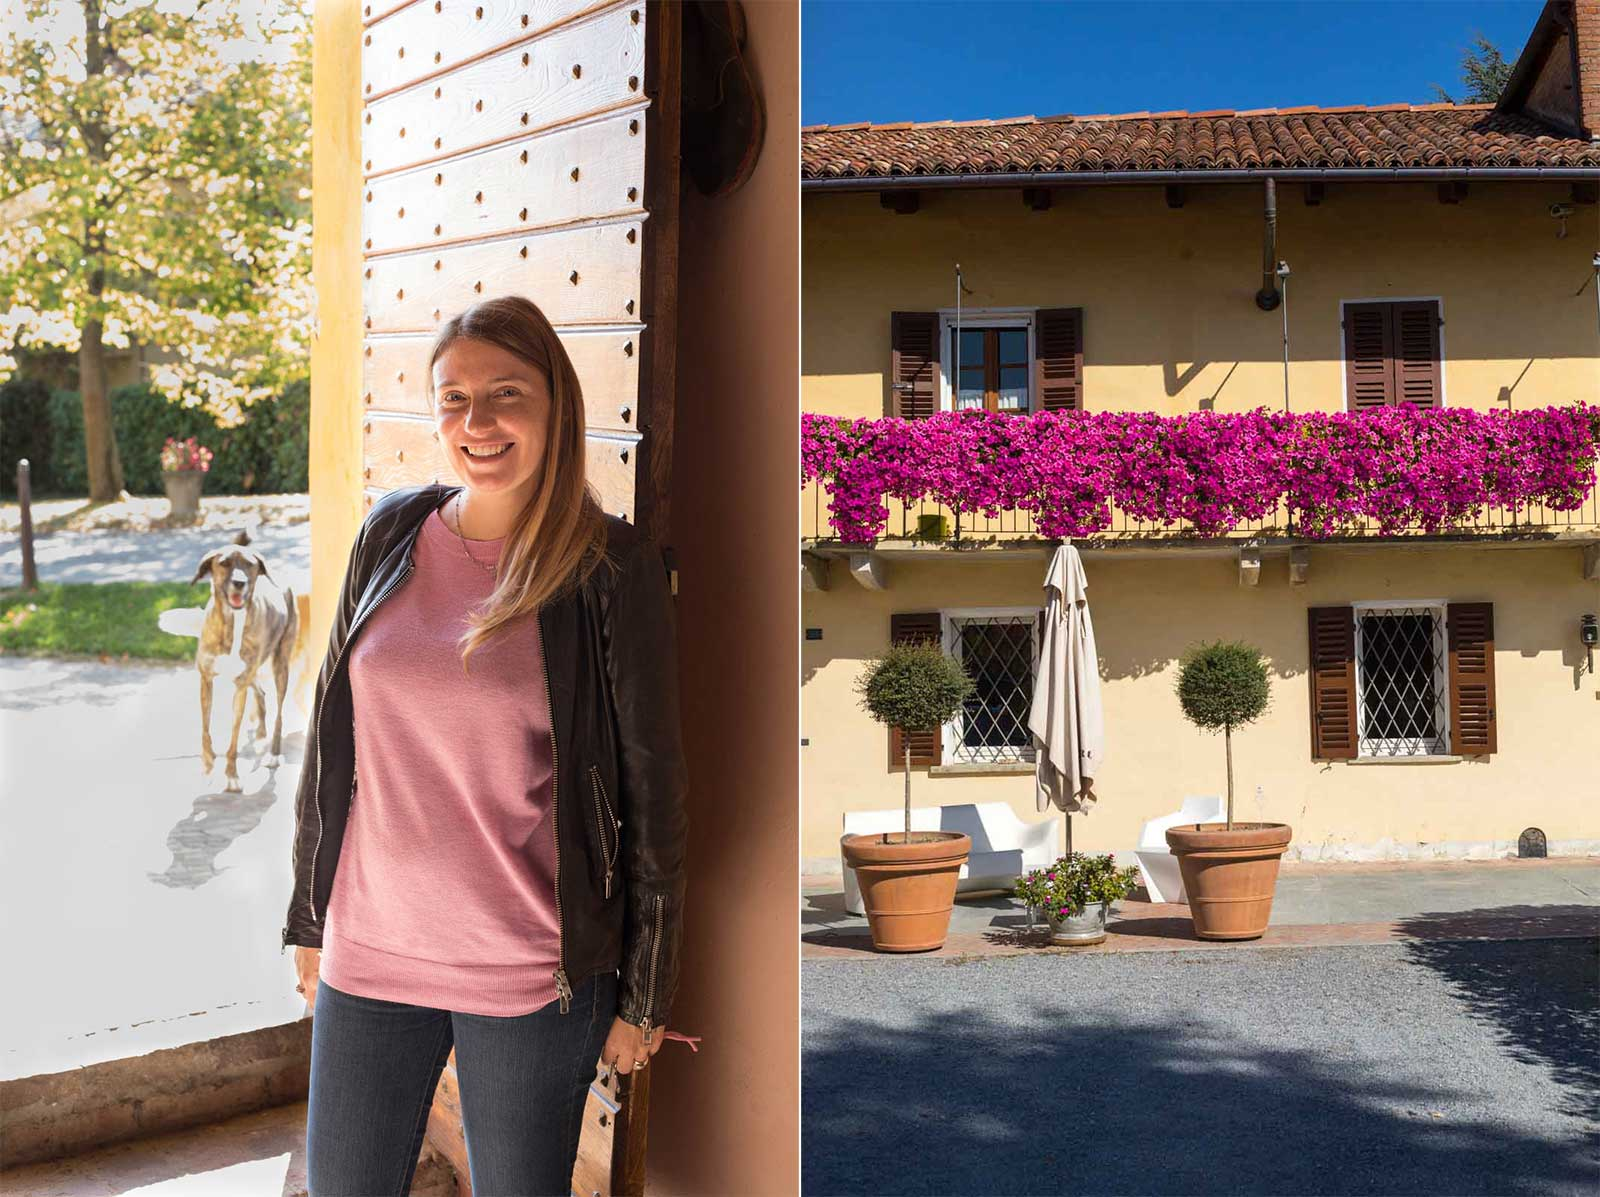 Right: Isabella Oddero (and a photobombing canine member of the family). Left: The lemon-cream colored home and winery of the Oddero family. ©Kevin Day/Opening a Bottle